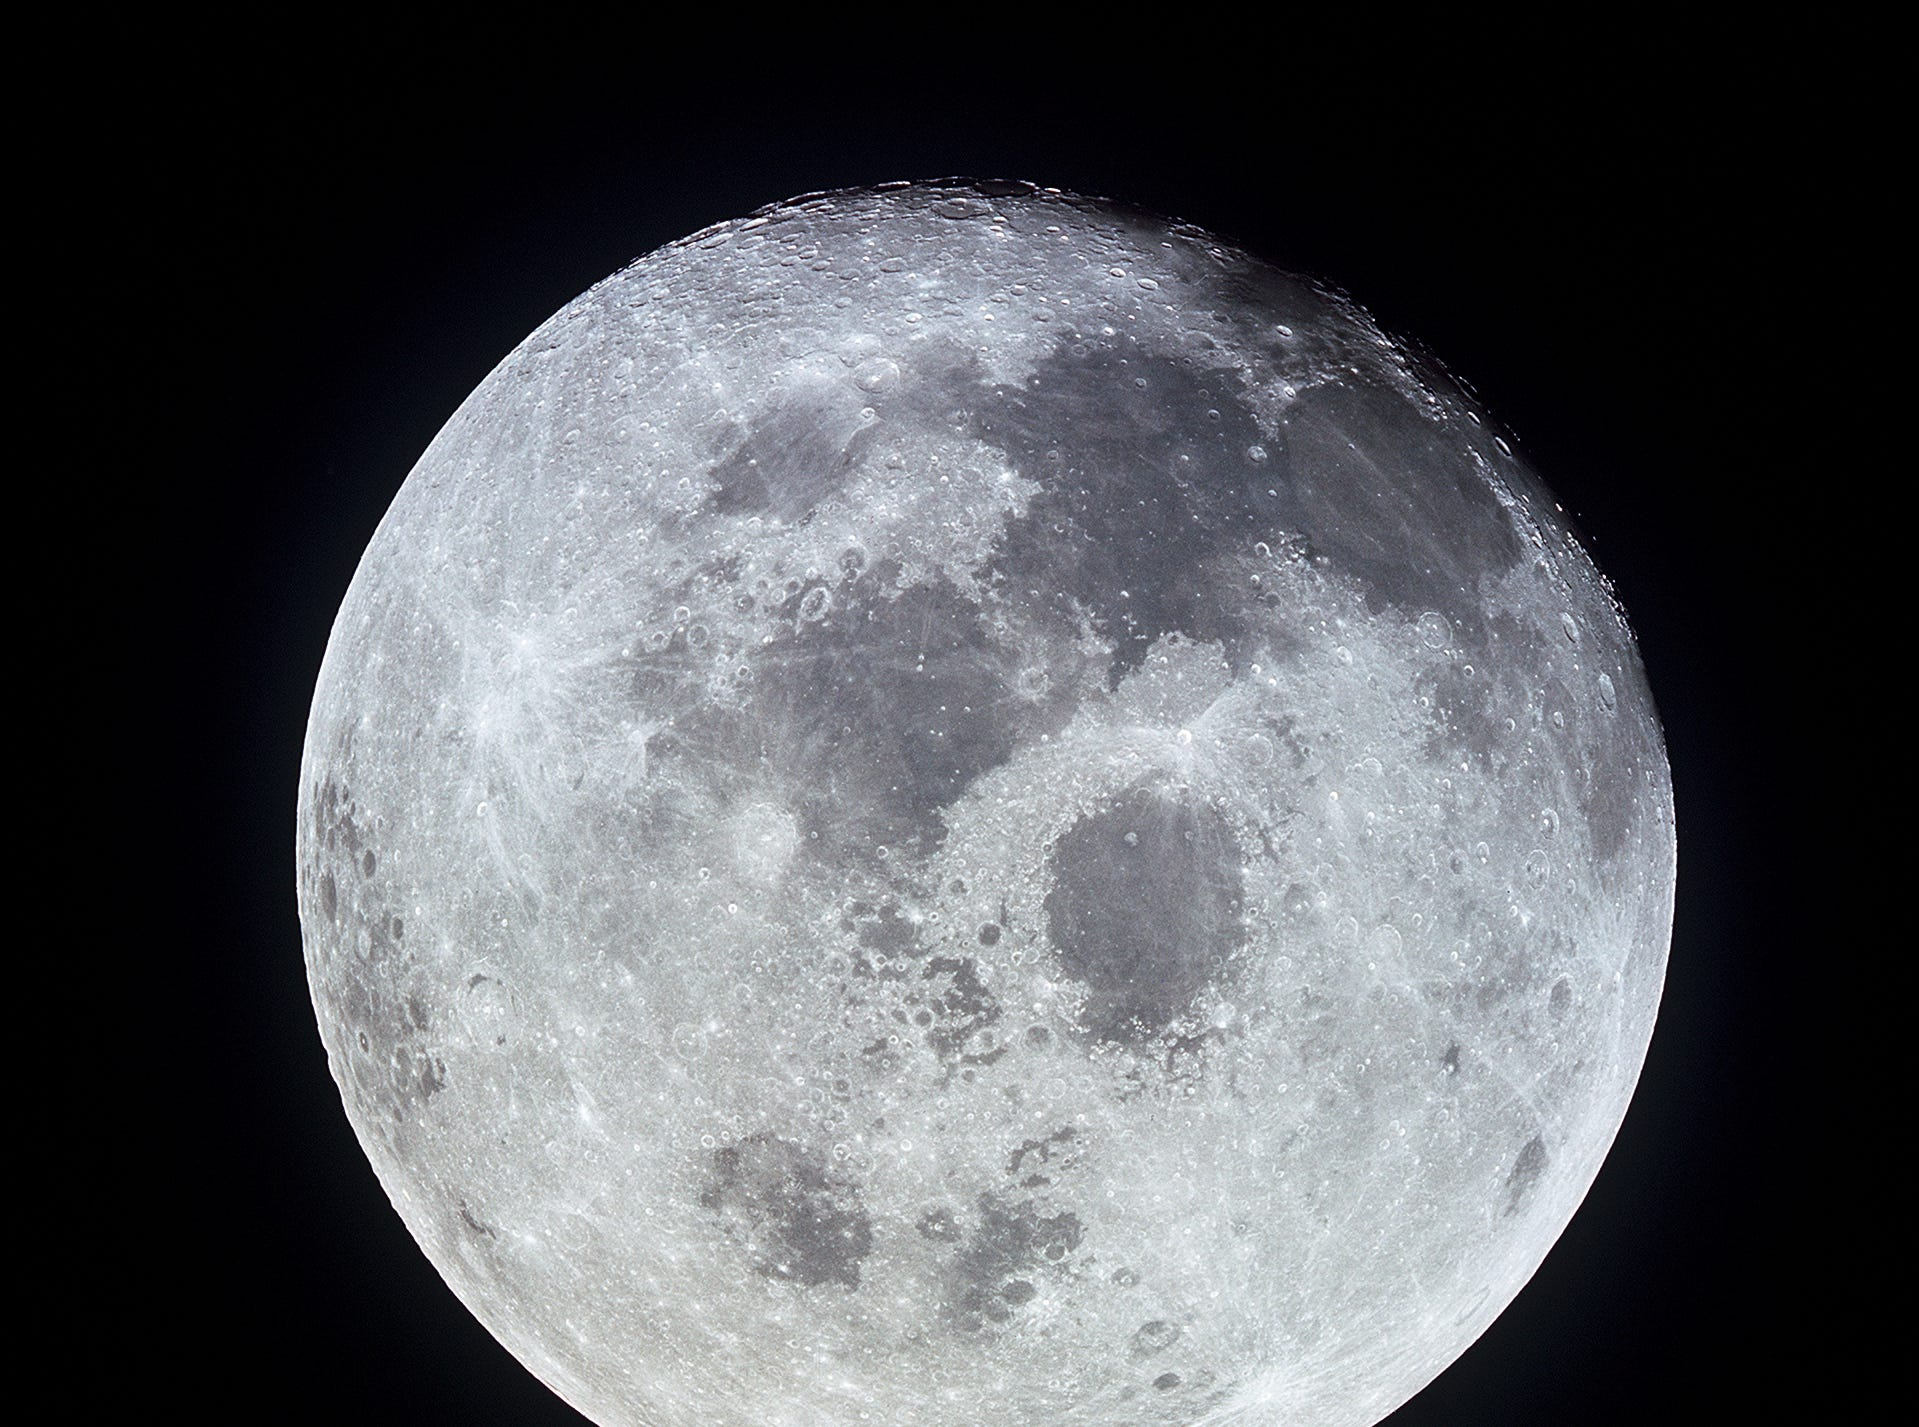 This outstanding view of the full moon was photographed from the Apollo 11 spacecraft during its trans-Earth journey homeward. When this picture was taken, the spacecraft was already 10,000 nautical miles away. On board Apollo 11 were commander Neil Armstrong, command module pilot Michael Collins and lunar module pilot Buzz Aldrin. While astronauts